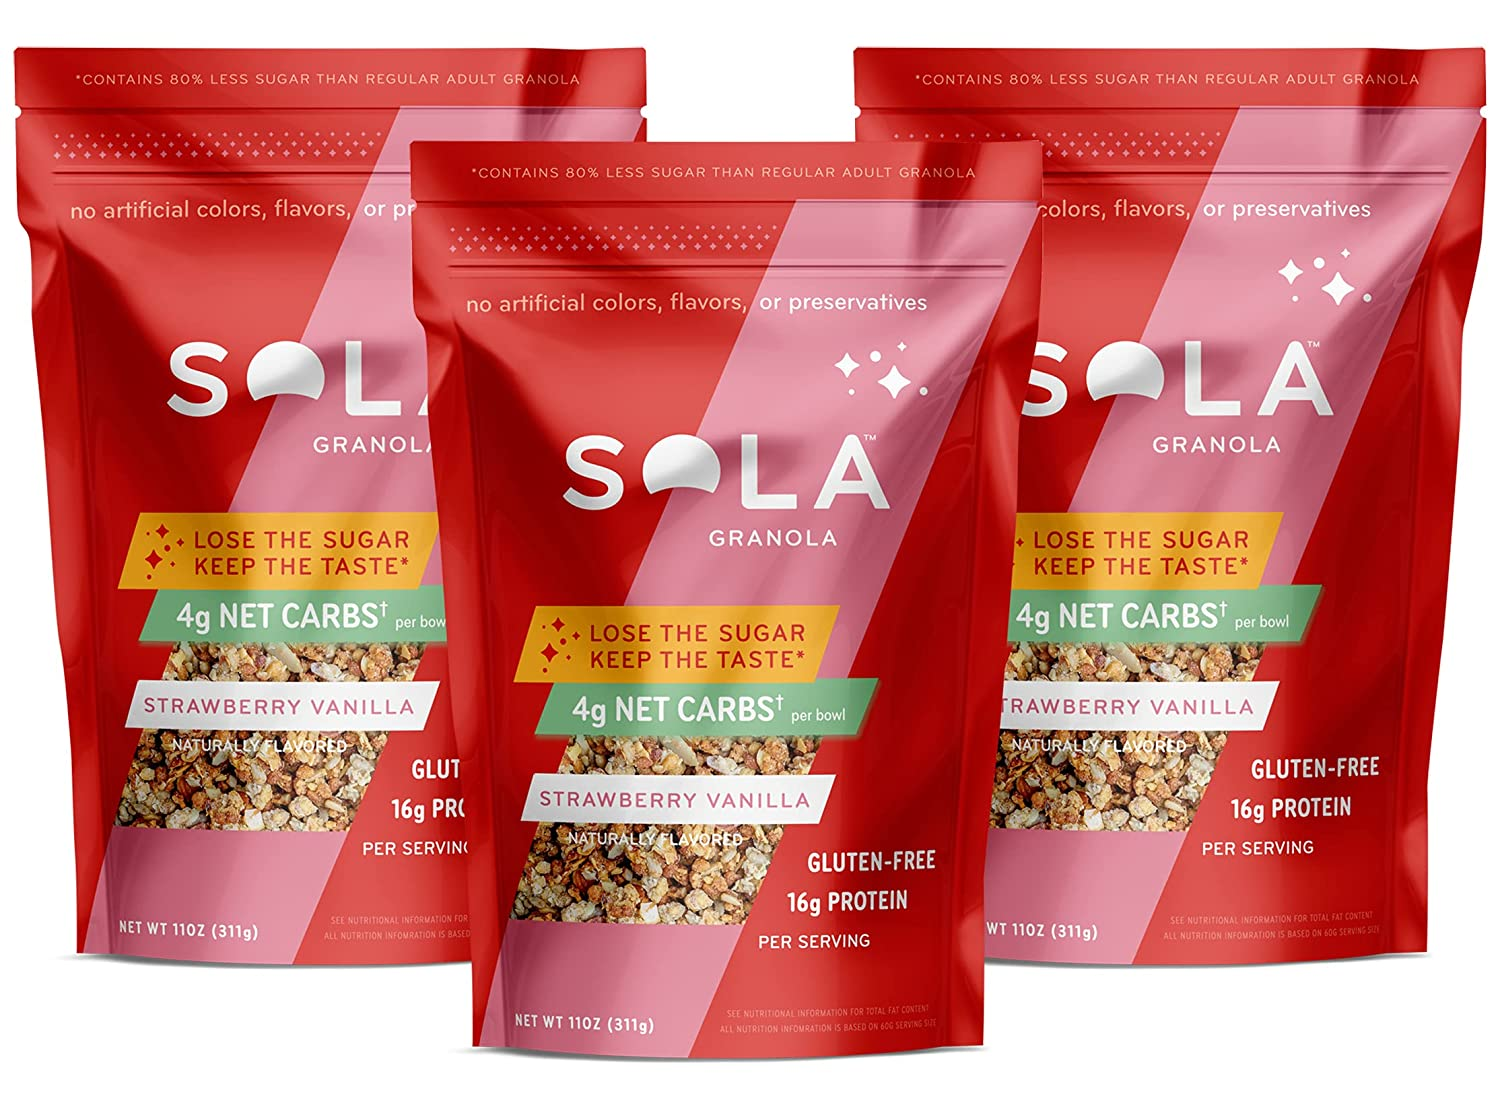 Sola Low Carb & Keto Friendly Granola, Strawberry Vanilla - Low Sugar, Naturally Flavored, Gluten Free & No Artificial Colors, Flavors or Preservatives, 11 OZ Pouch (Pack of 3)